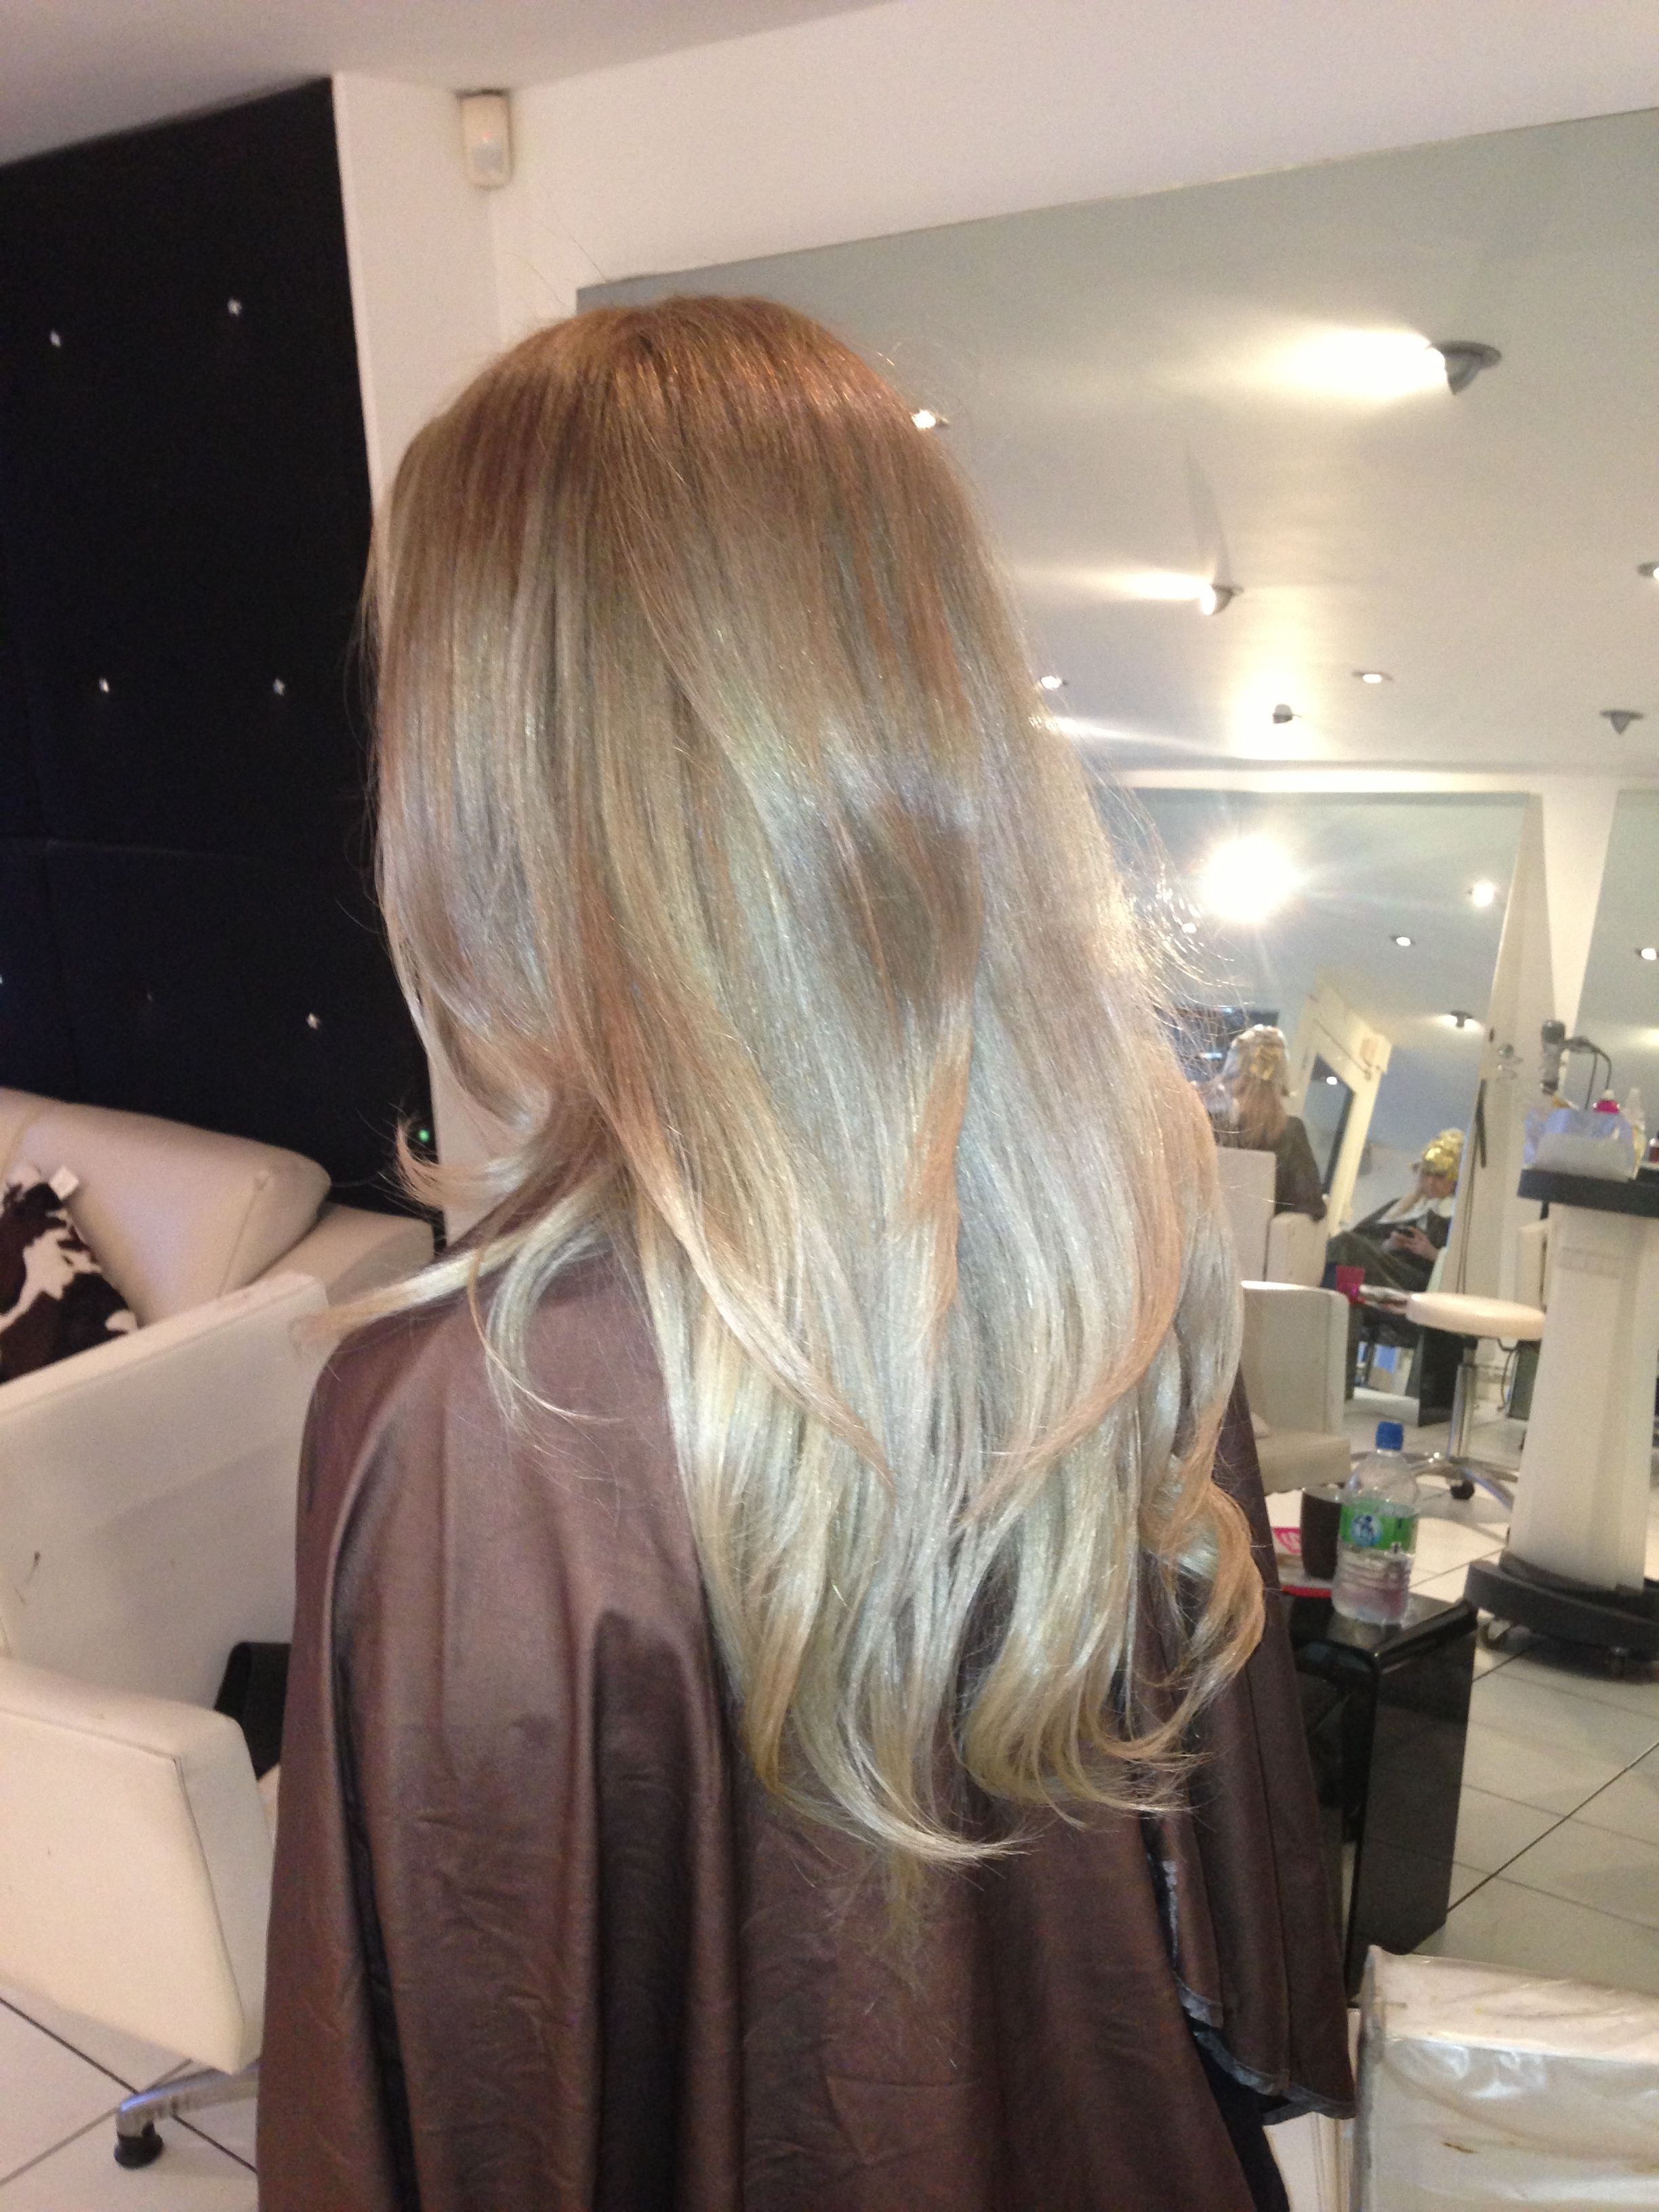 Ombré Hair Courtesy Of Dawn Bell Odb Hairdressers In Headingley Leeds X Ombre